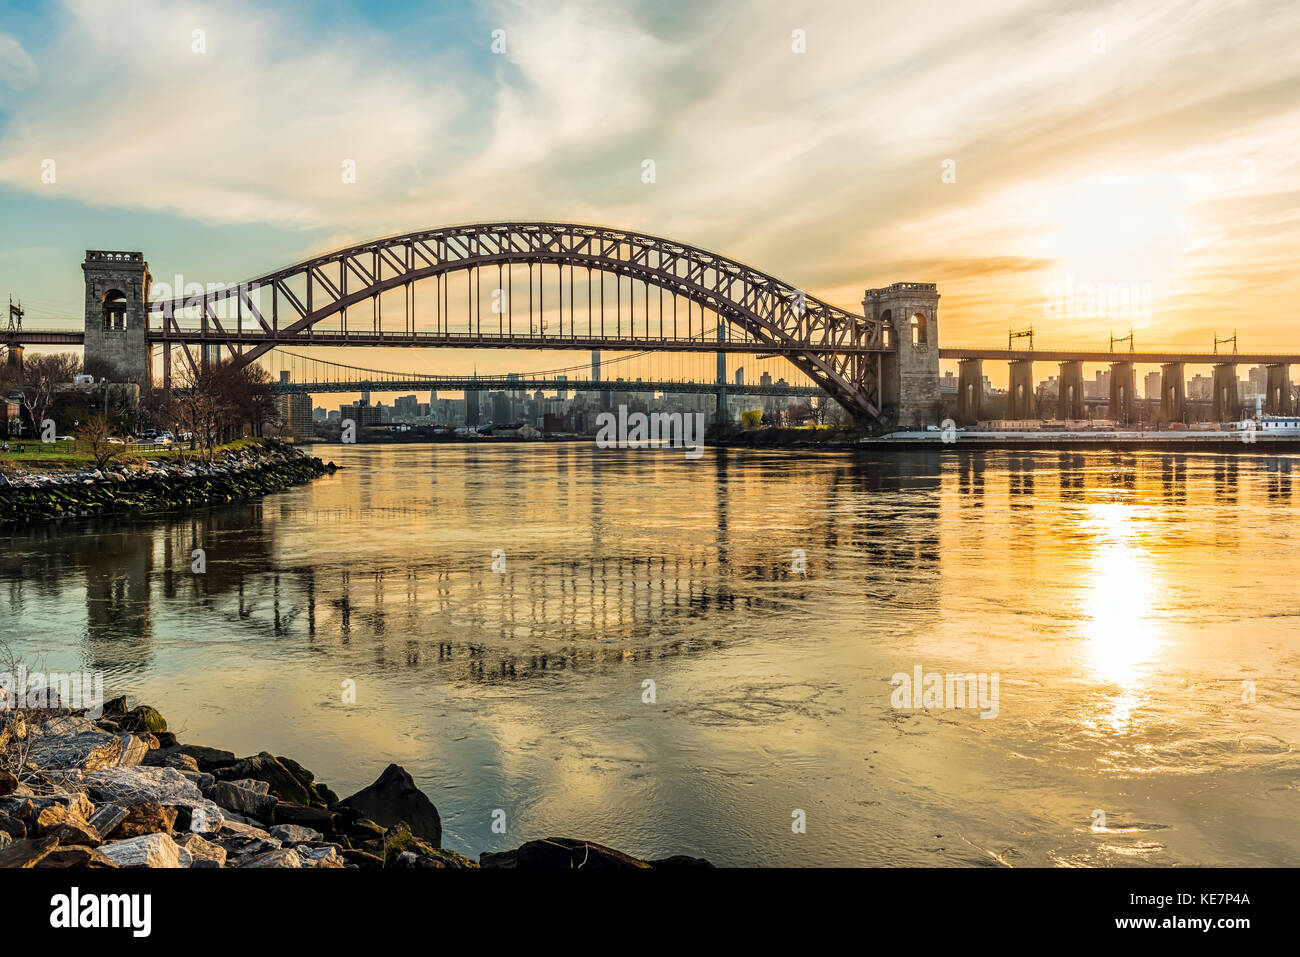 Hell Gate And Rfk Triboro Bridges At Sunset, Ralph Demarco Park; Queens, New York, United States Of America - Stock Image